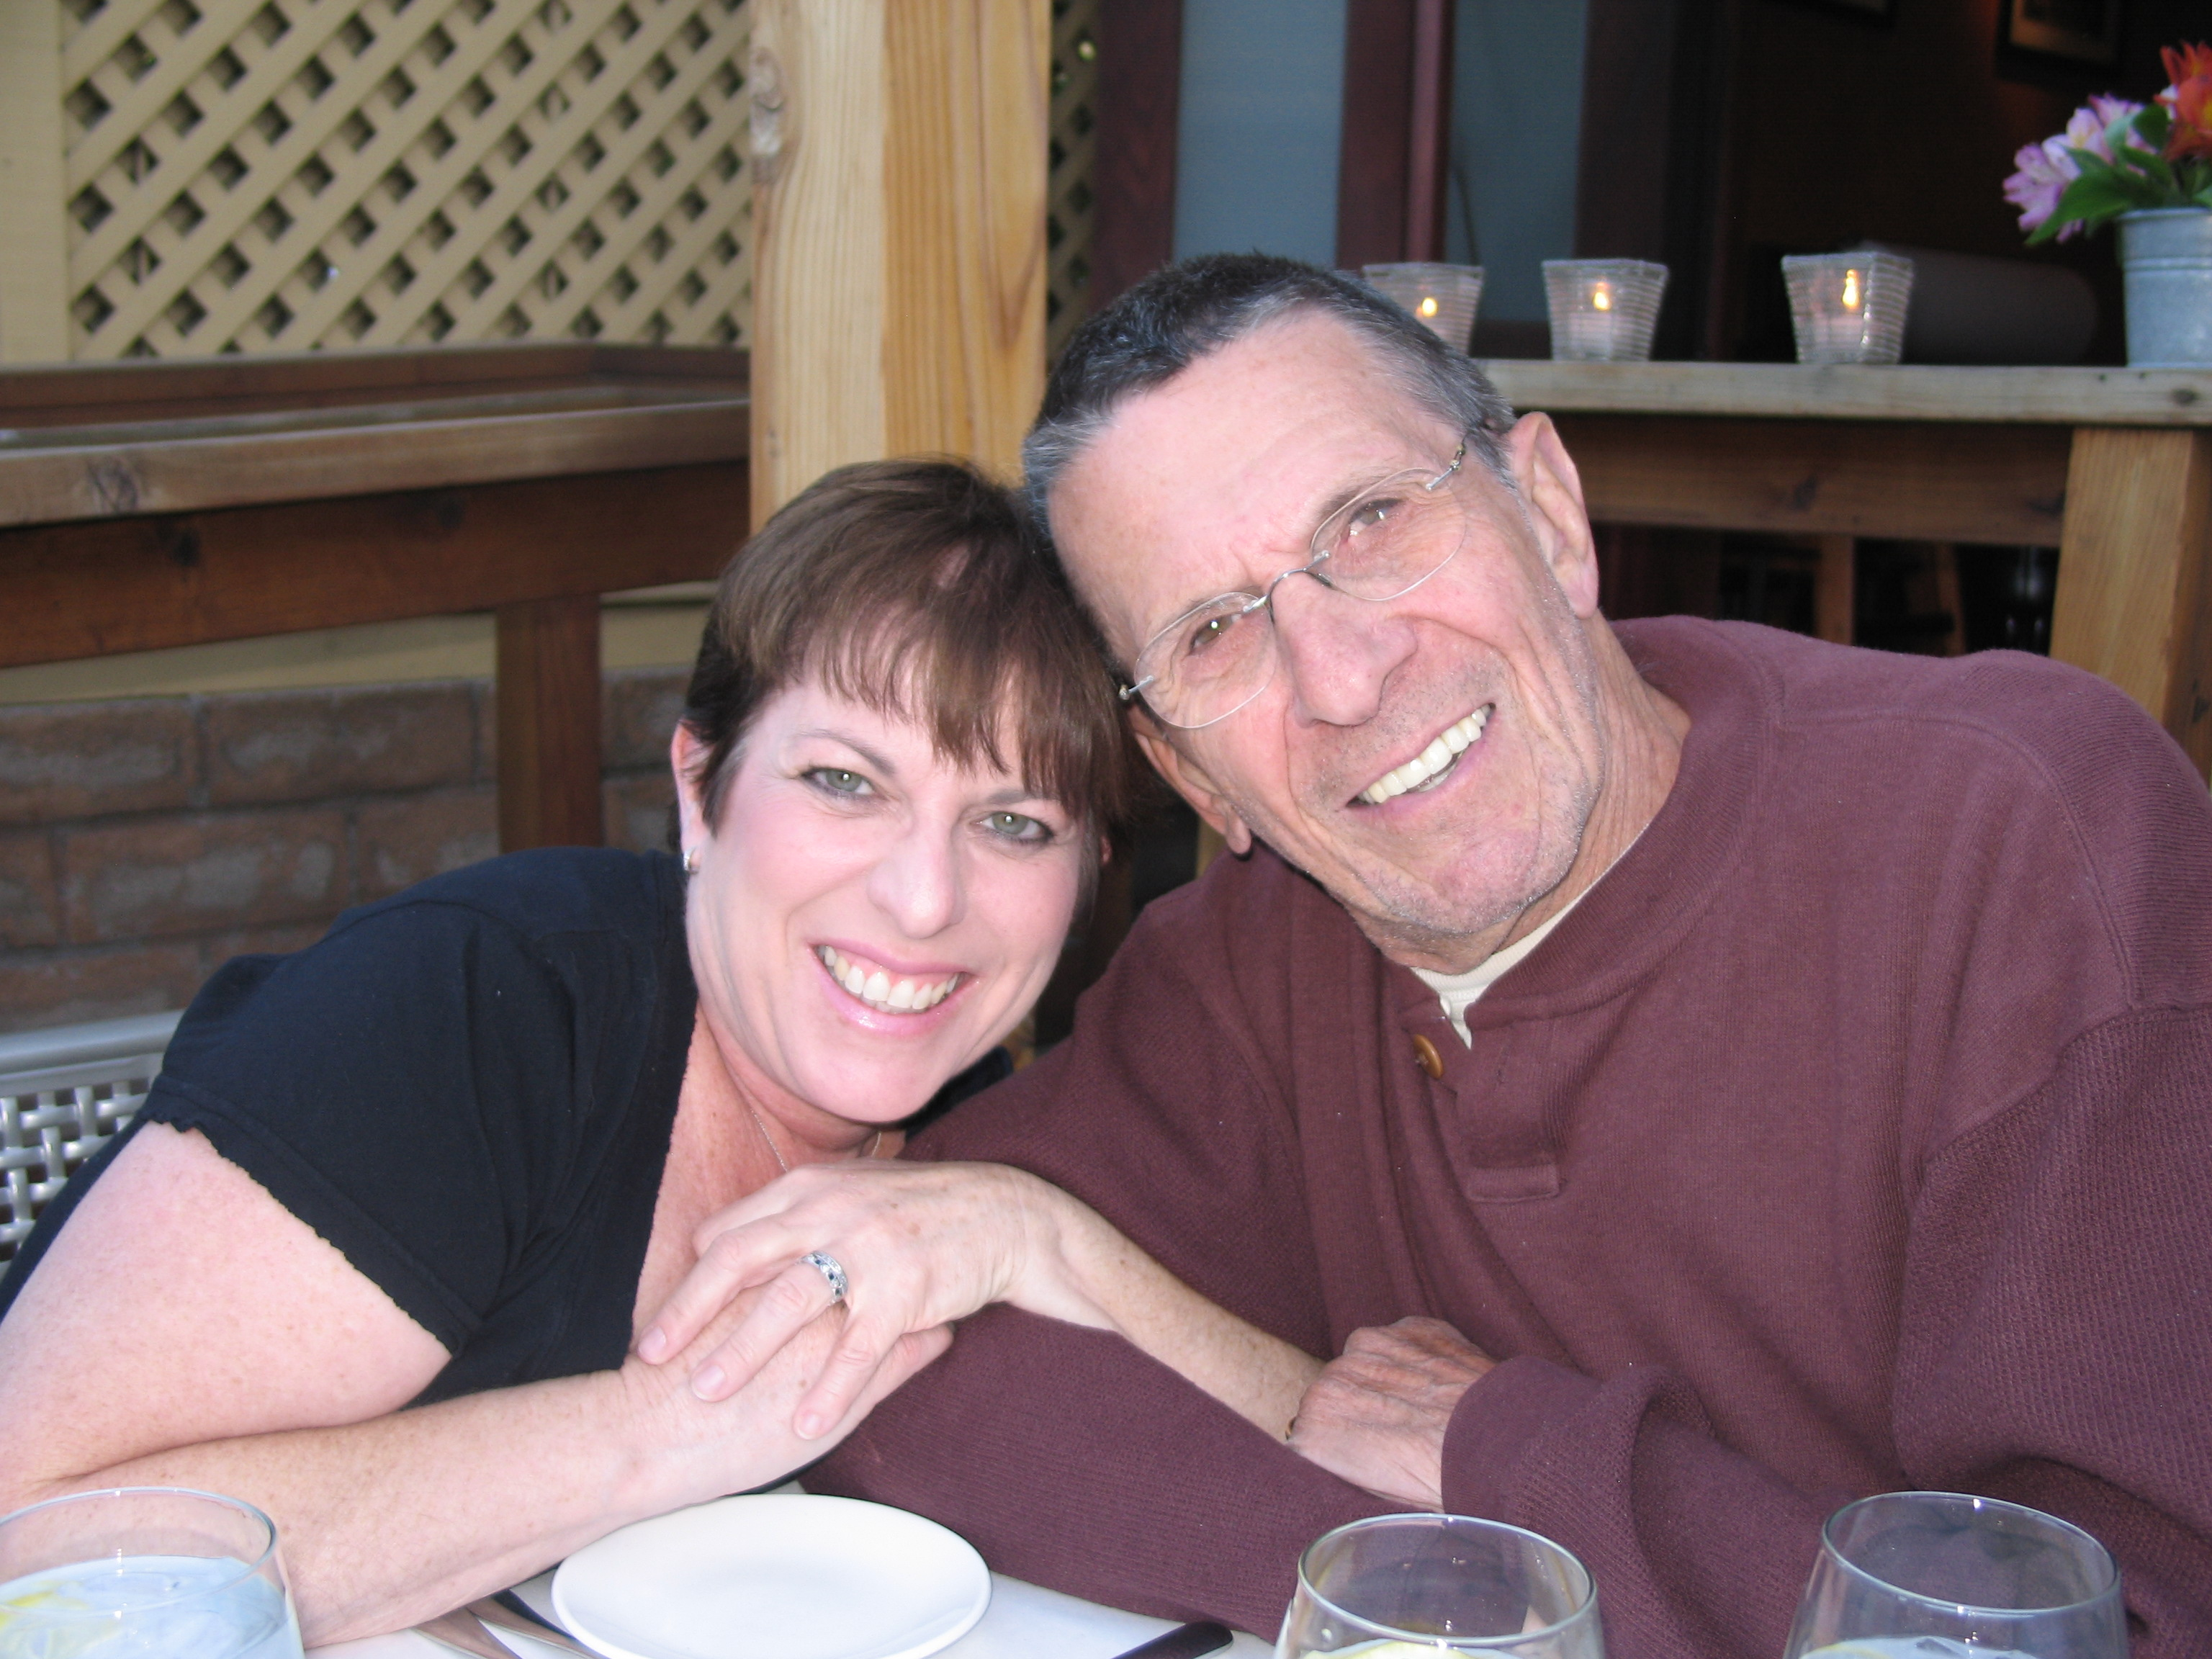 Julie Nimoy with her father, Leonard Nimoy